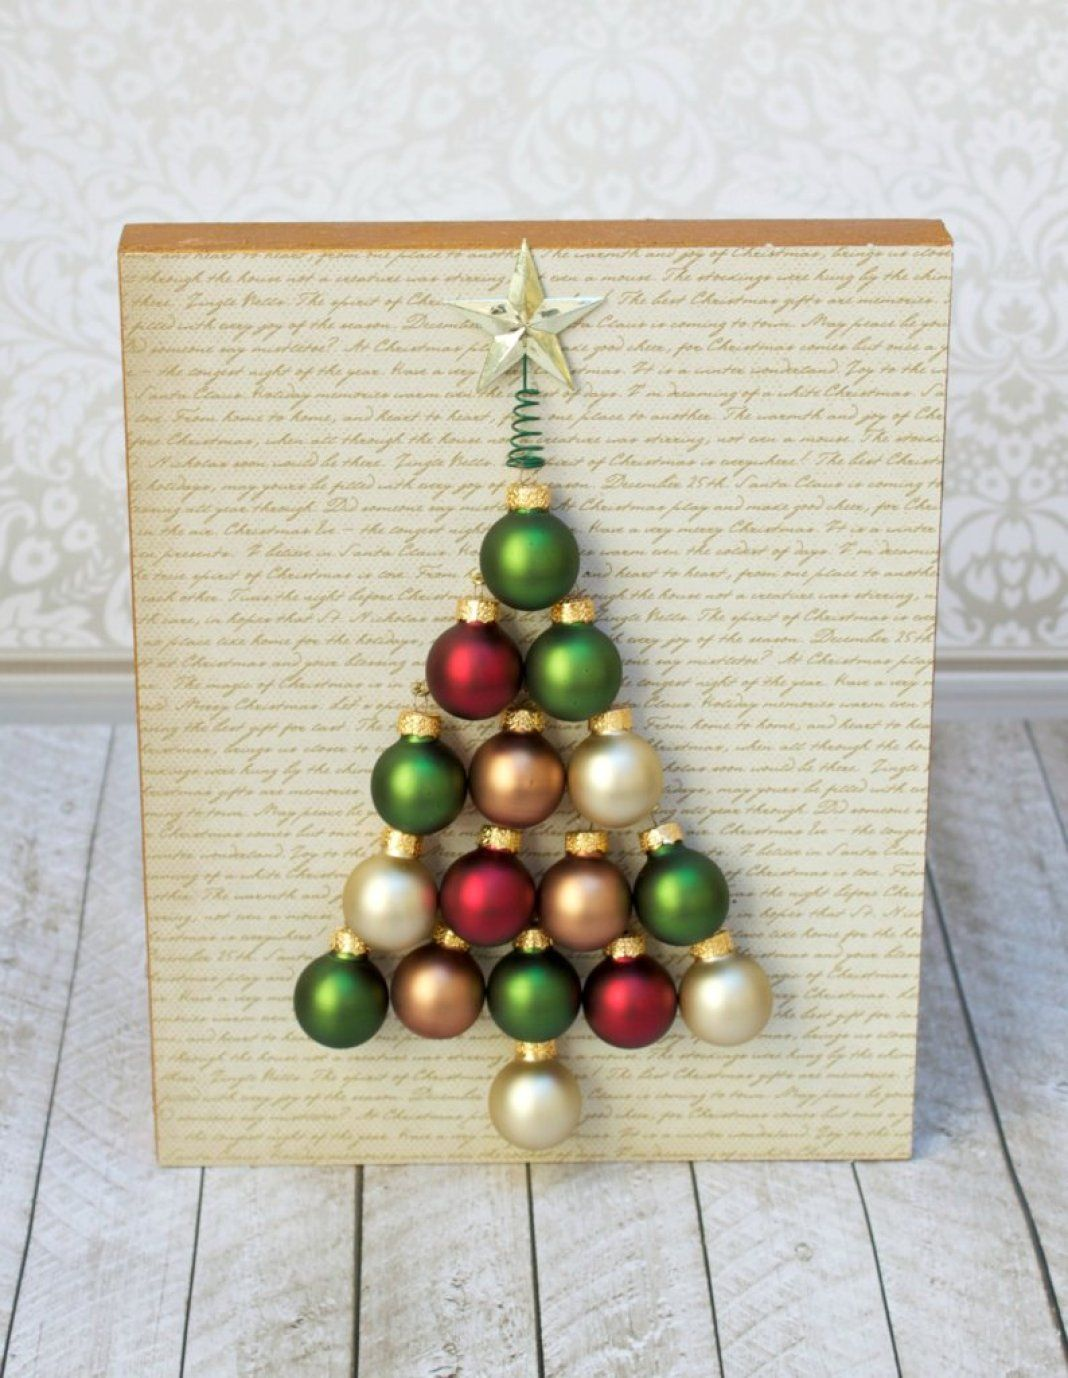 I Used Miniature Glass Ball Ornaments To Create A Christmas Tree To Decorate My Home With This Winter Diy Christmas Wall Diy Santa Ornaments Holiday Wall Art